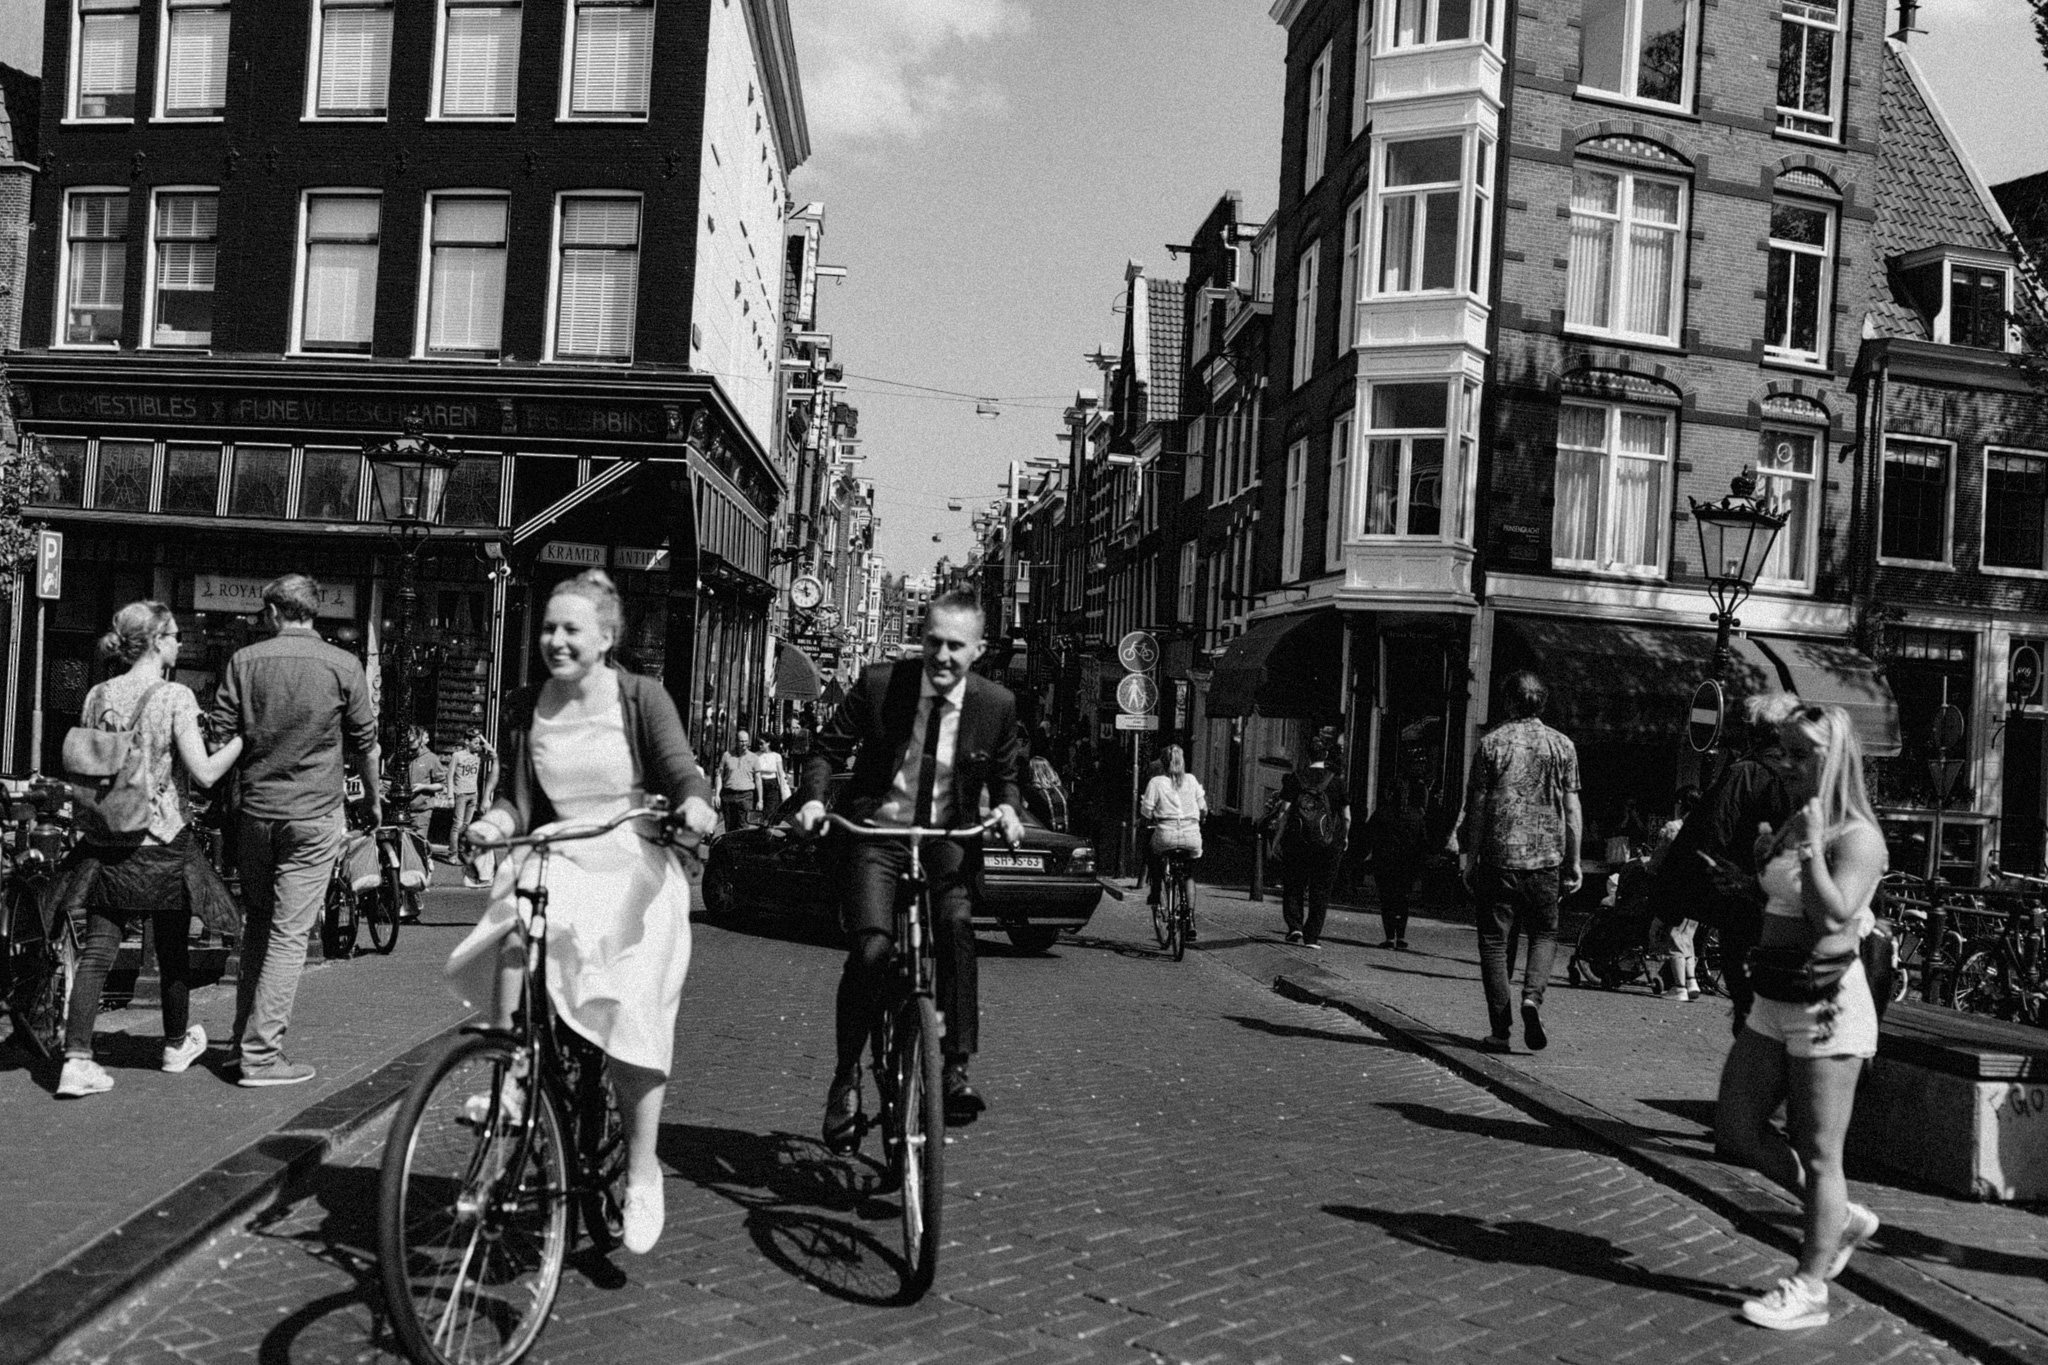 Elopement couple riding rental bikes through the streets of Amsterdam